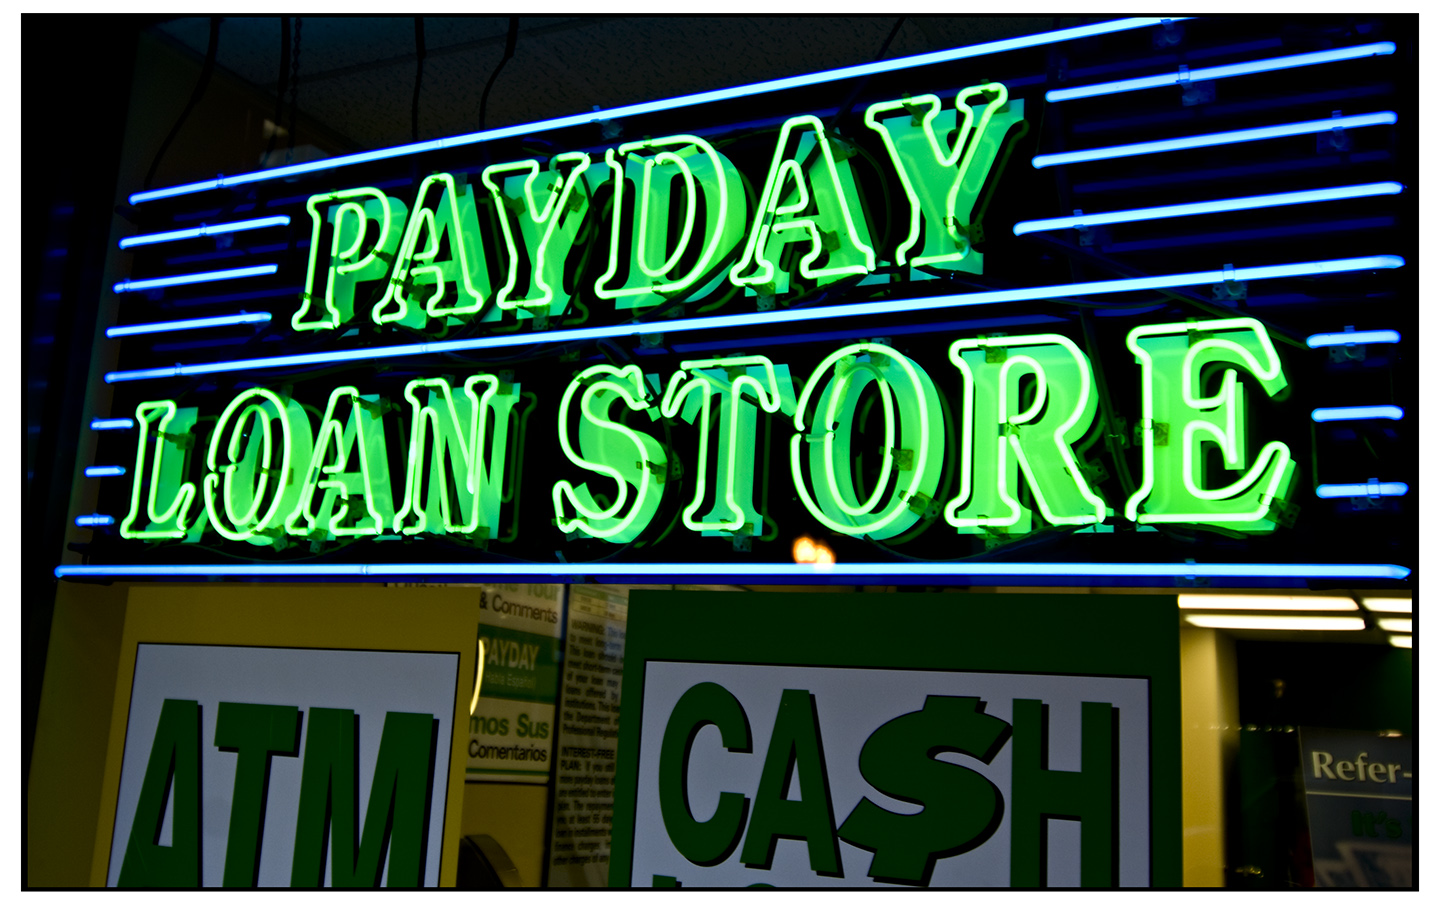 Pay day loans and the cycle of indebtedness